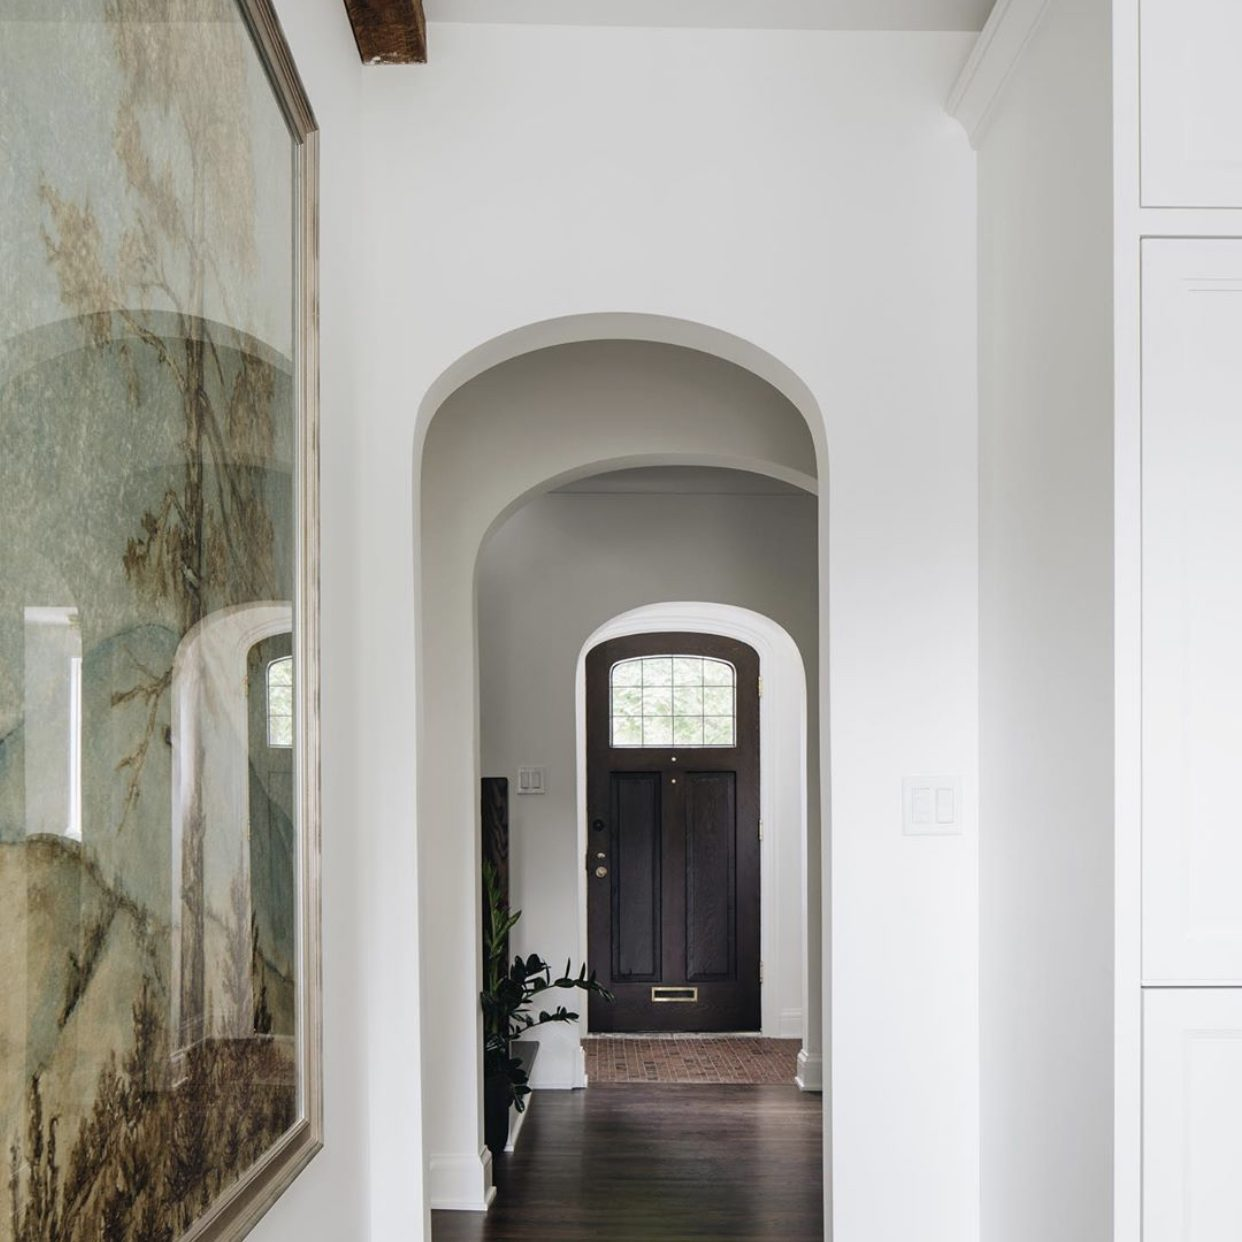 Kenowa Builers: Modern Neutral Foyer Design, Neutral Entryway Decor with Jean Stoffer Design